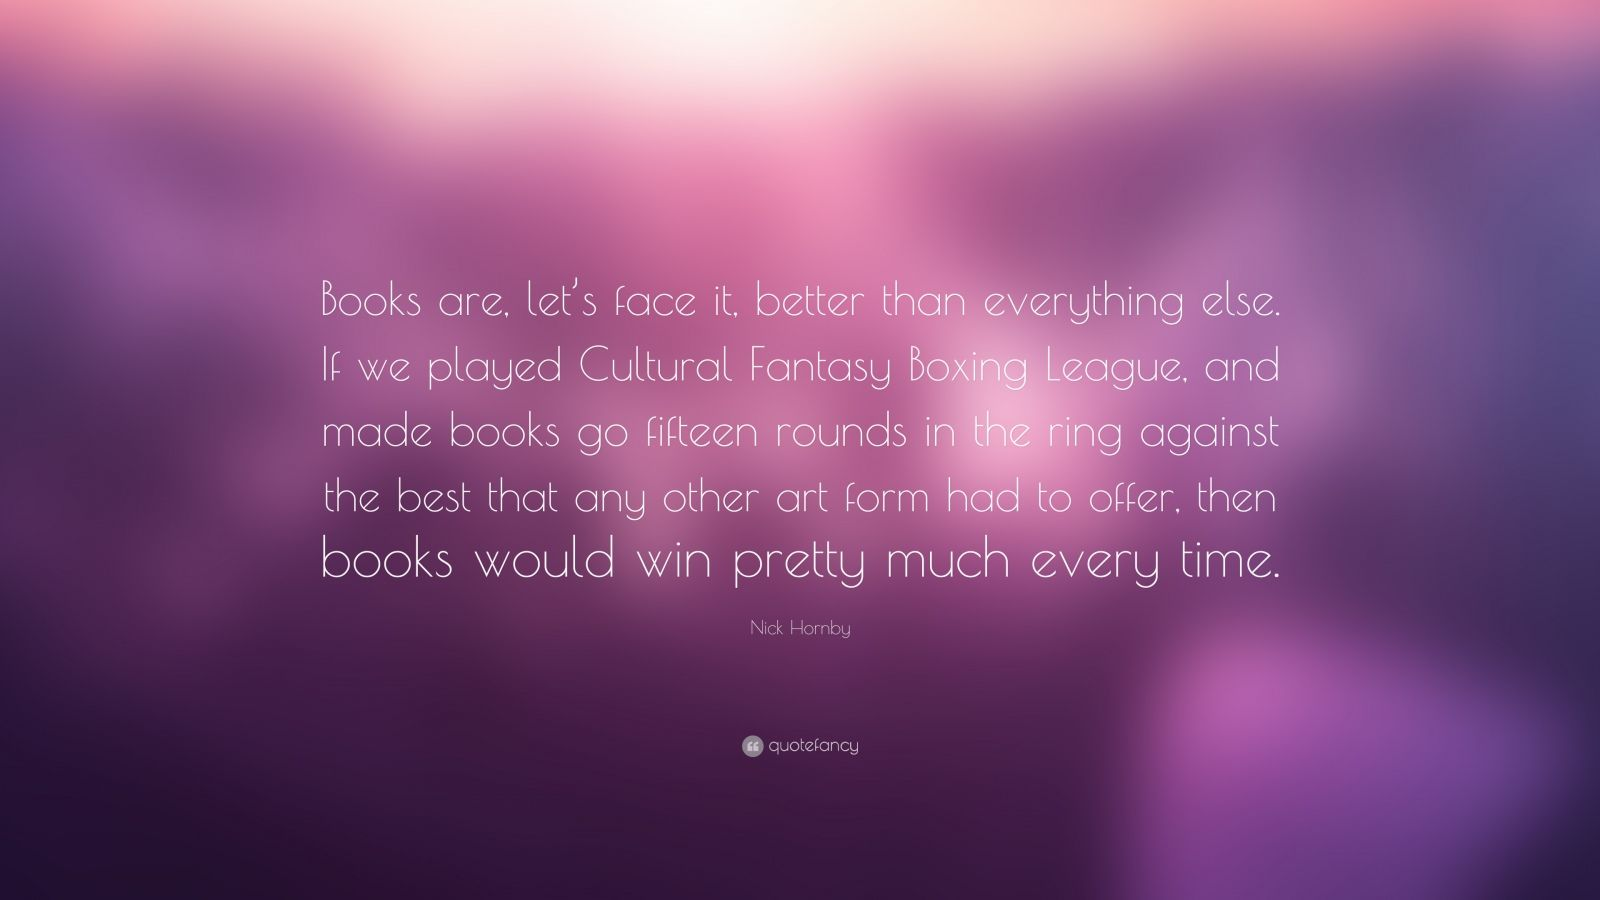 """Nick Hornby Quote: """"Books are, let's face it, better than everything else. If we played Cultural Fantasy Boxing League, and made books go fifteen rounds in the ring against the best that any other art form had to offer, then books would win pretty much every time."""""""